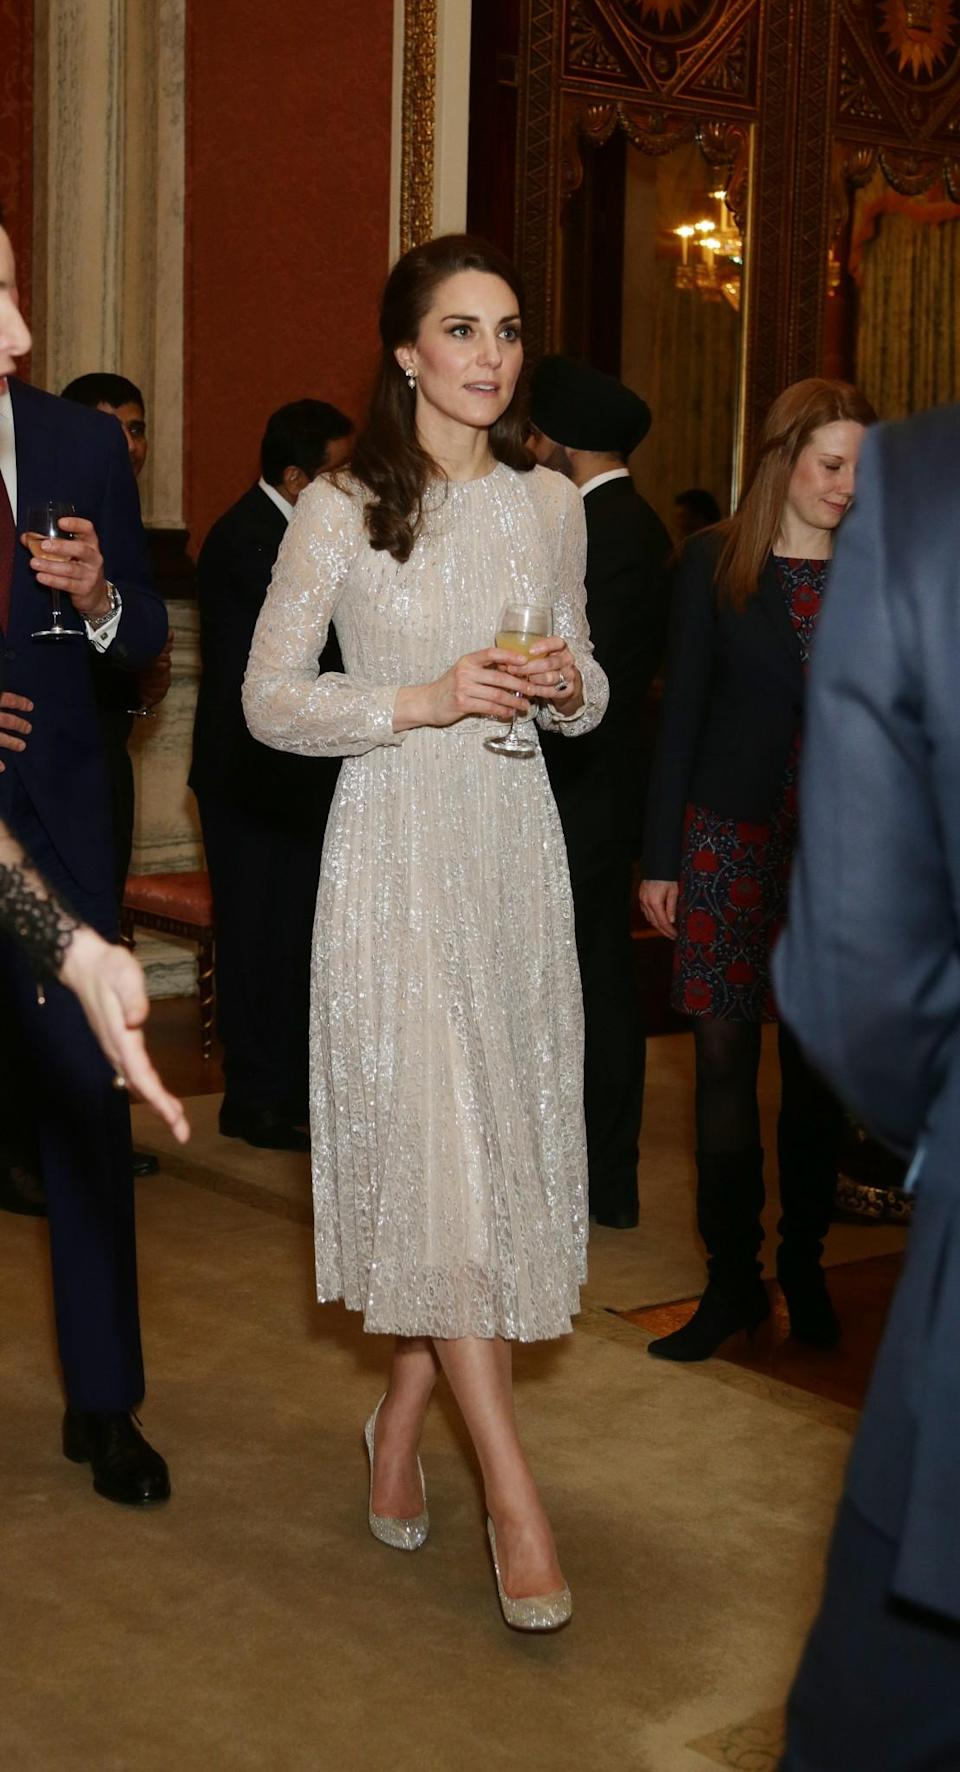 "<p>For a reception held at Buckingham Palace to celebrate the UK-India Year of Culture, Kate chose a look by her favourite British designer, Erdem. The cocktail dress was made from a metallic lace and featured semi-sheer sleeves as well as a pleated skirt. It sold out straight after the Duchess wore it but luckily, her glittering Oscar de la Renta heels can <a href=""http://www.oscardelarenta.com/new-arrivals/platinum-lame-cabrina-pumps"" rel=""nofollow noopener"" target=""_blank"" data-ylk=""slk:still be yours. [Photo: Getty]"" class=""link rapid-noclick-resp""><span>still be yours.<br><em>[Photo: Getty]</em></span></a> </p>"